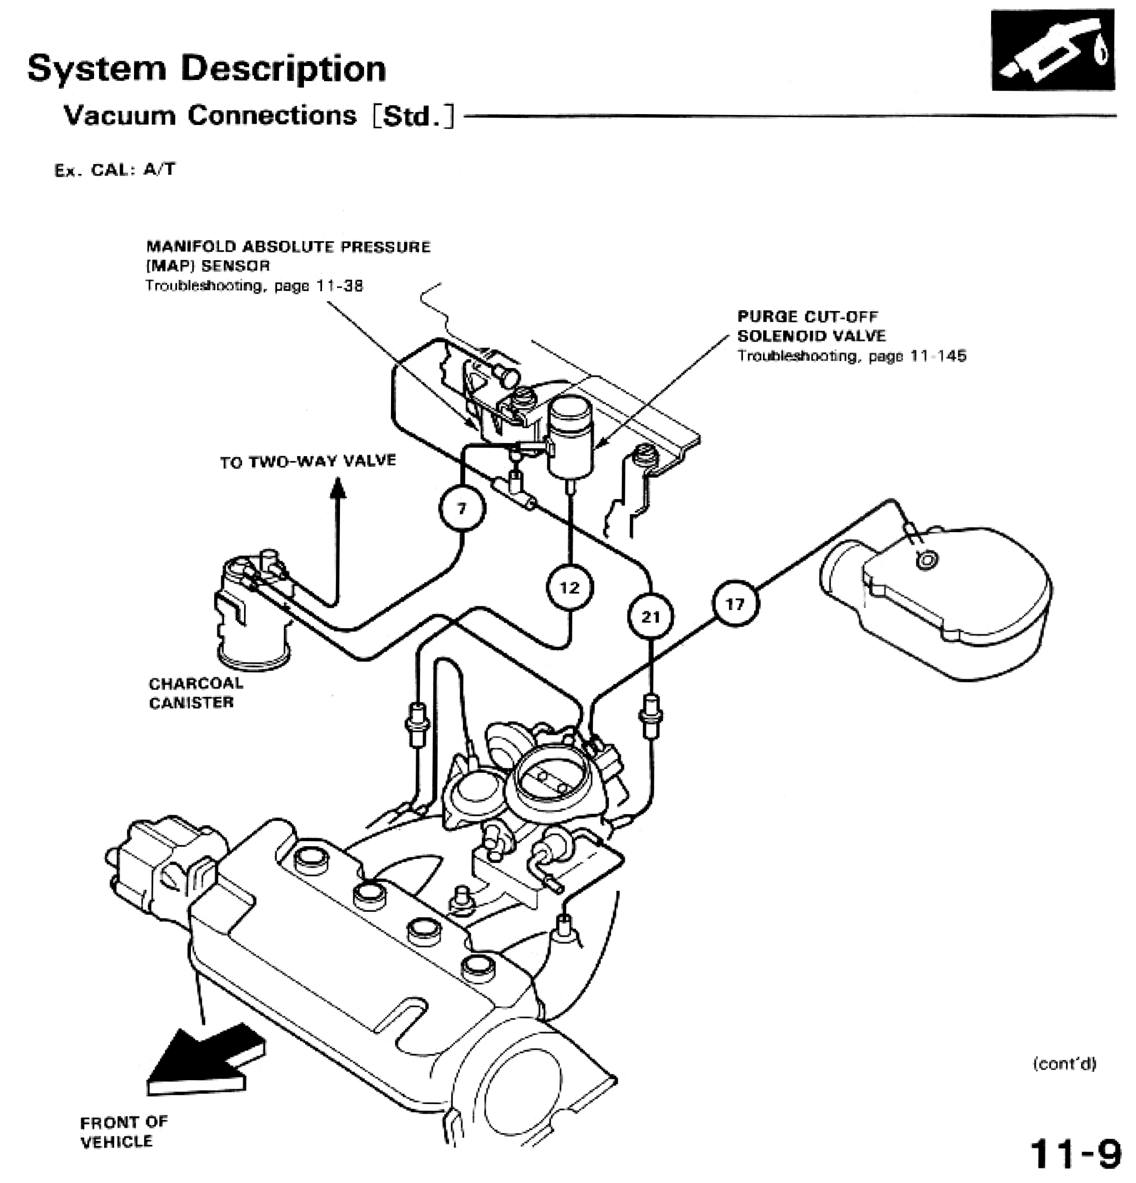 hight resolution of mazda 3 0 v6 engine vacumm lines diagram example electrical wiring rh cranejapan co ford escape